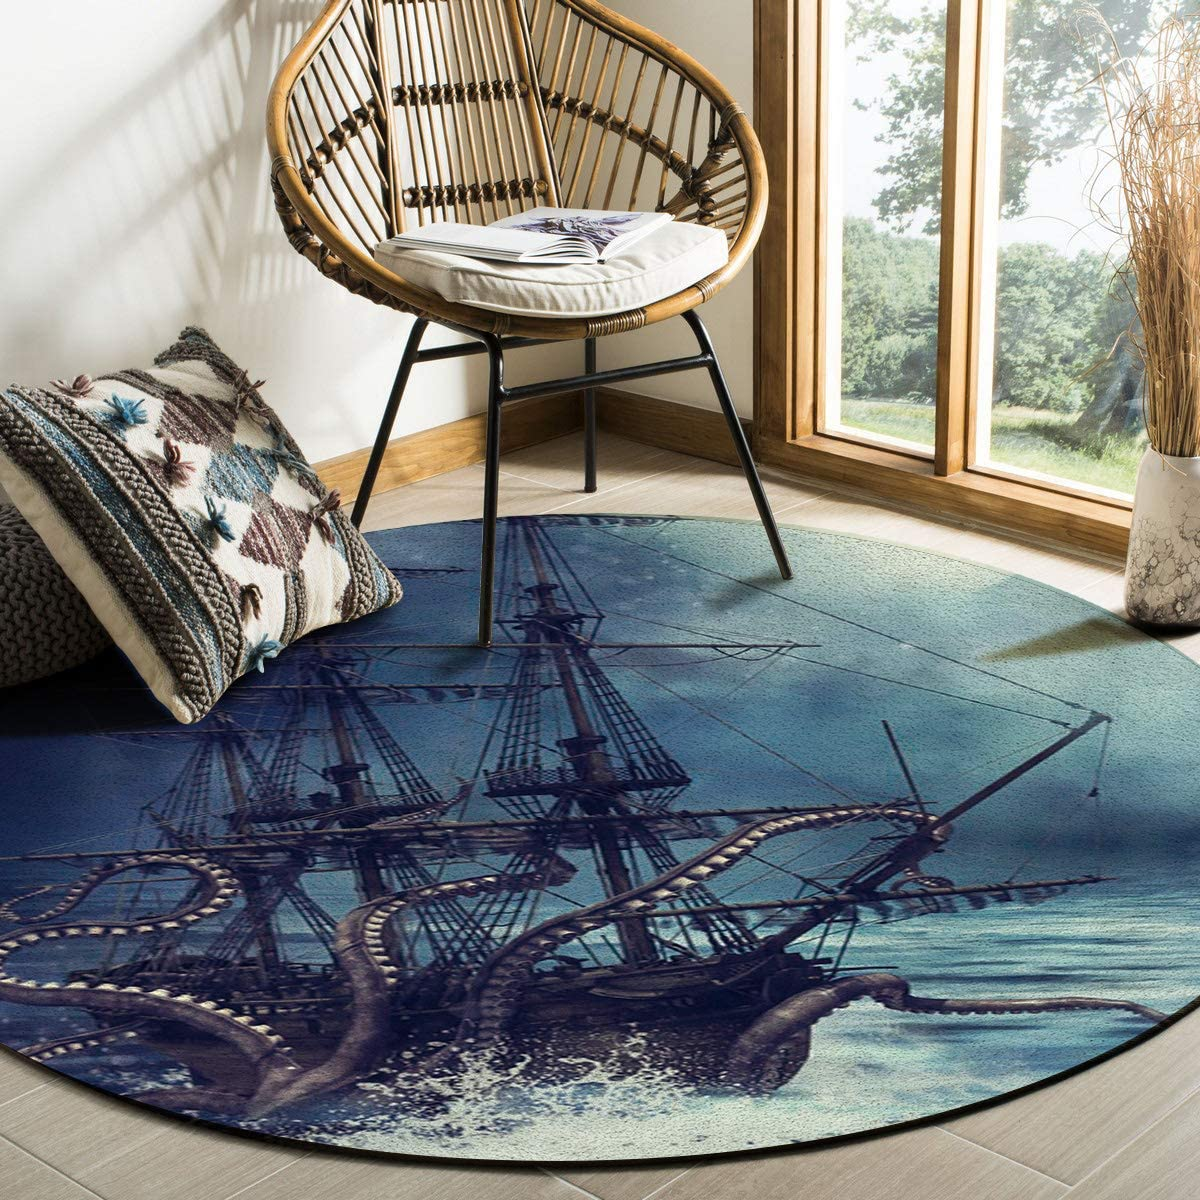 Octopus Area Rug Round Rugs 4ft Miami Mall Nautical Pirate Sh Kraken Ocean Super sale period limited